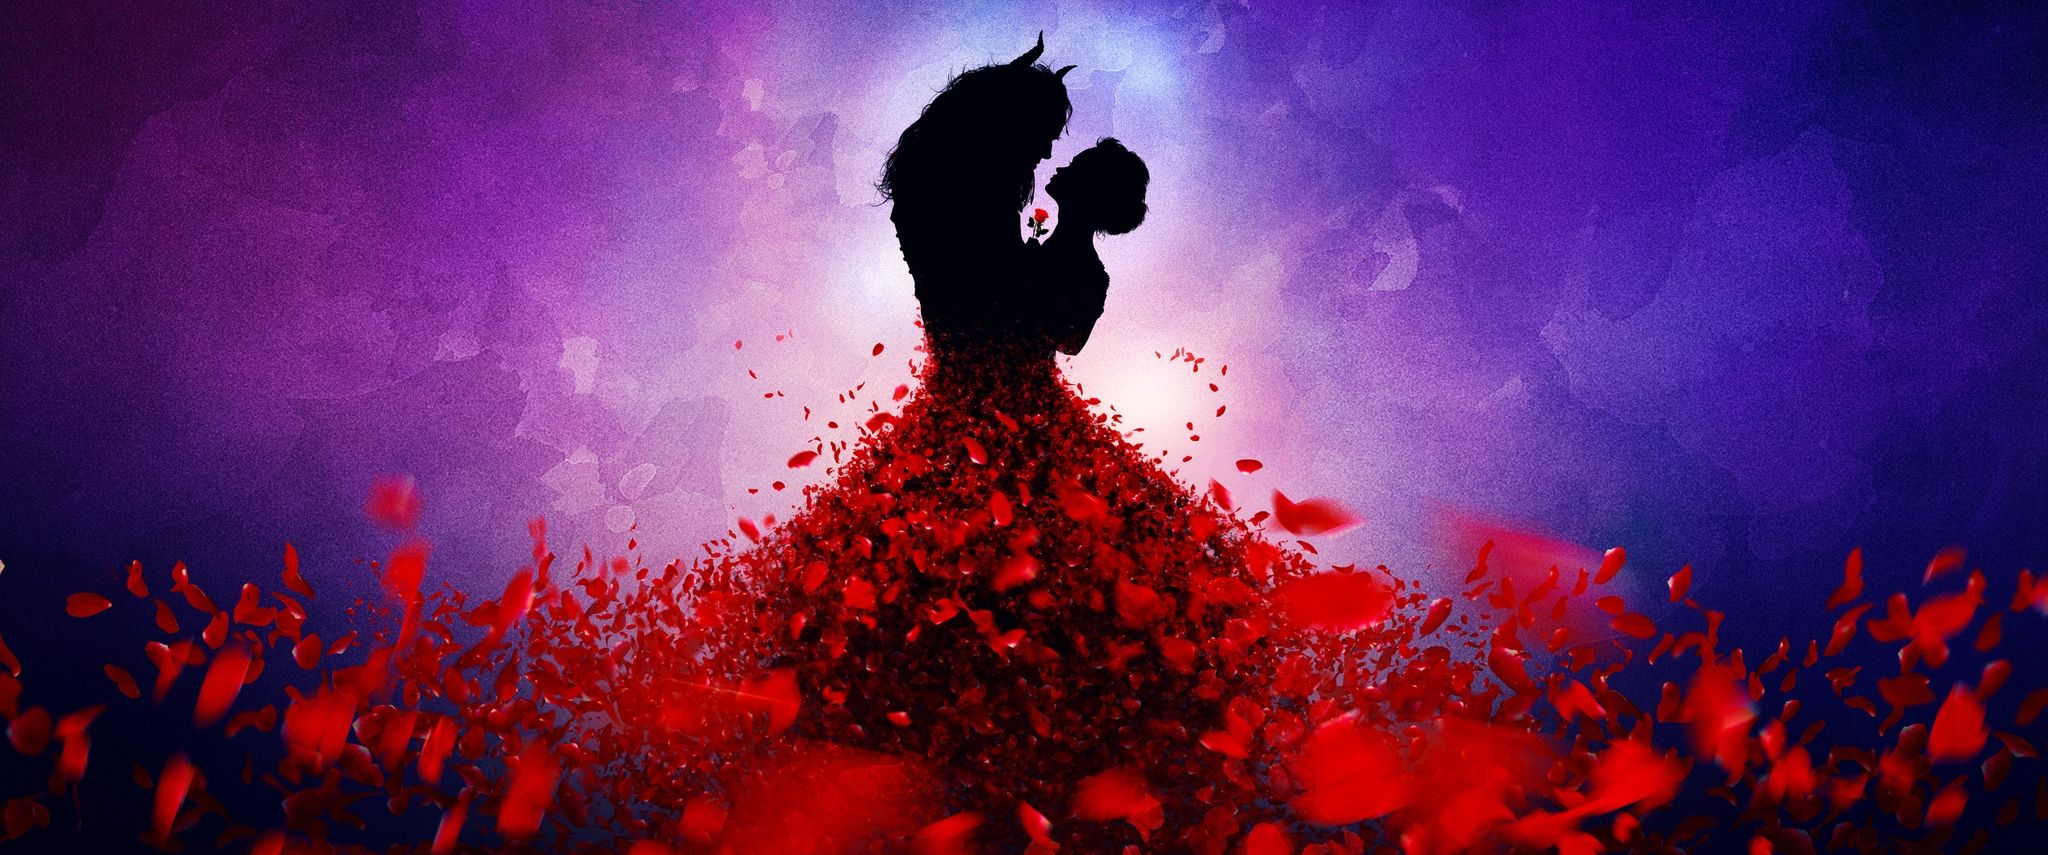 Disney confirms Beauty and the Beast to return to the stage in the UK